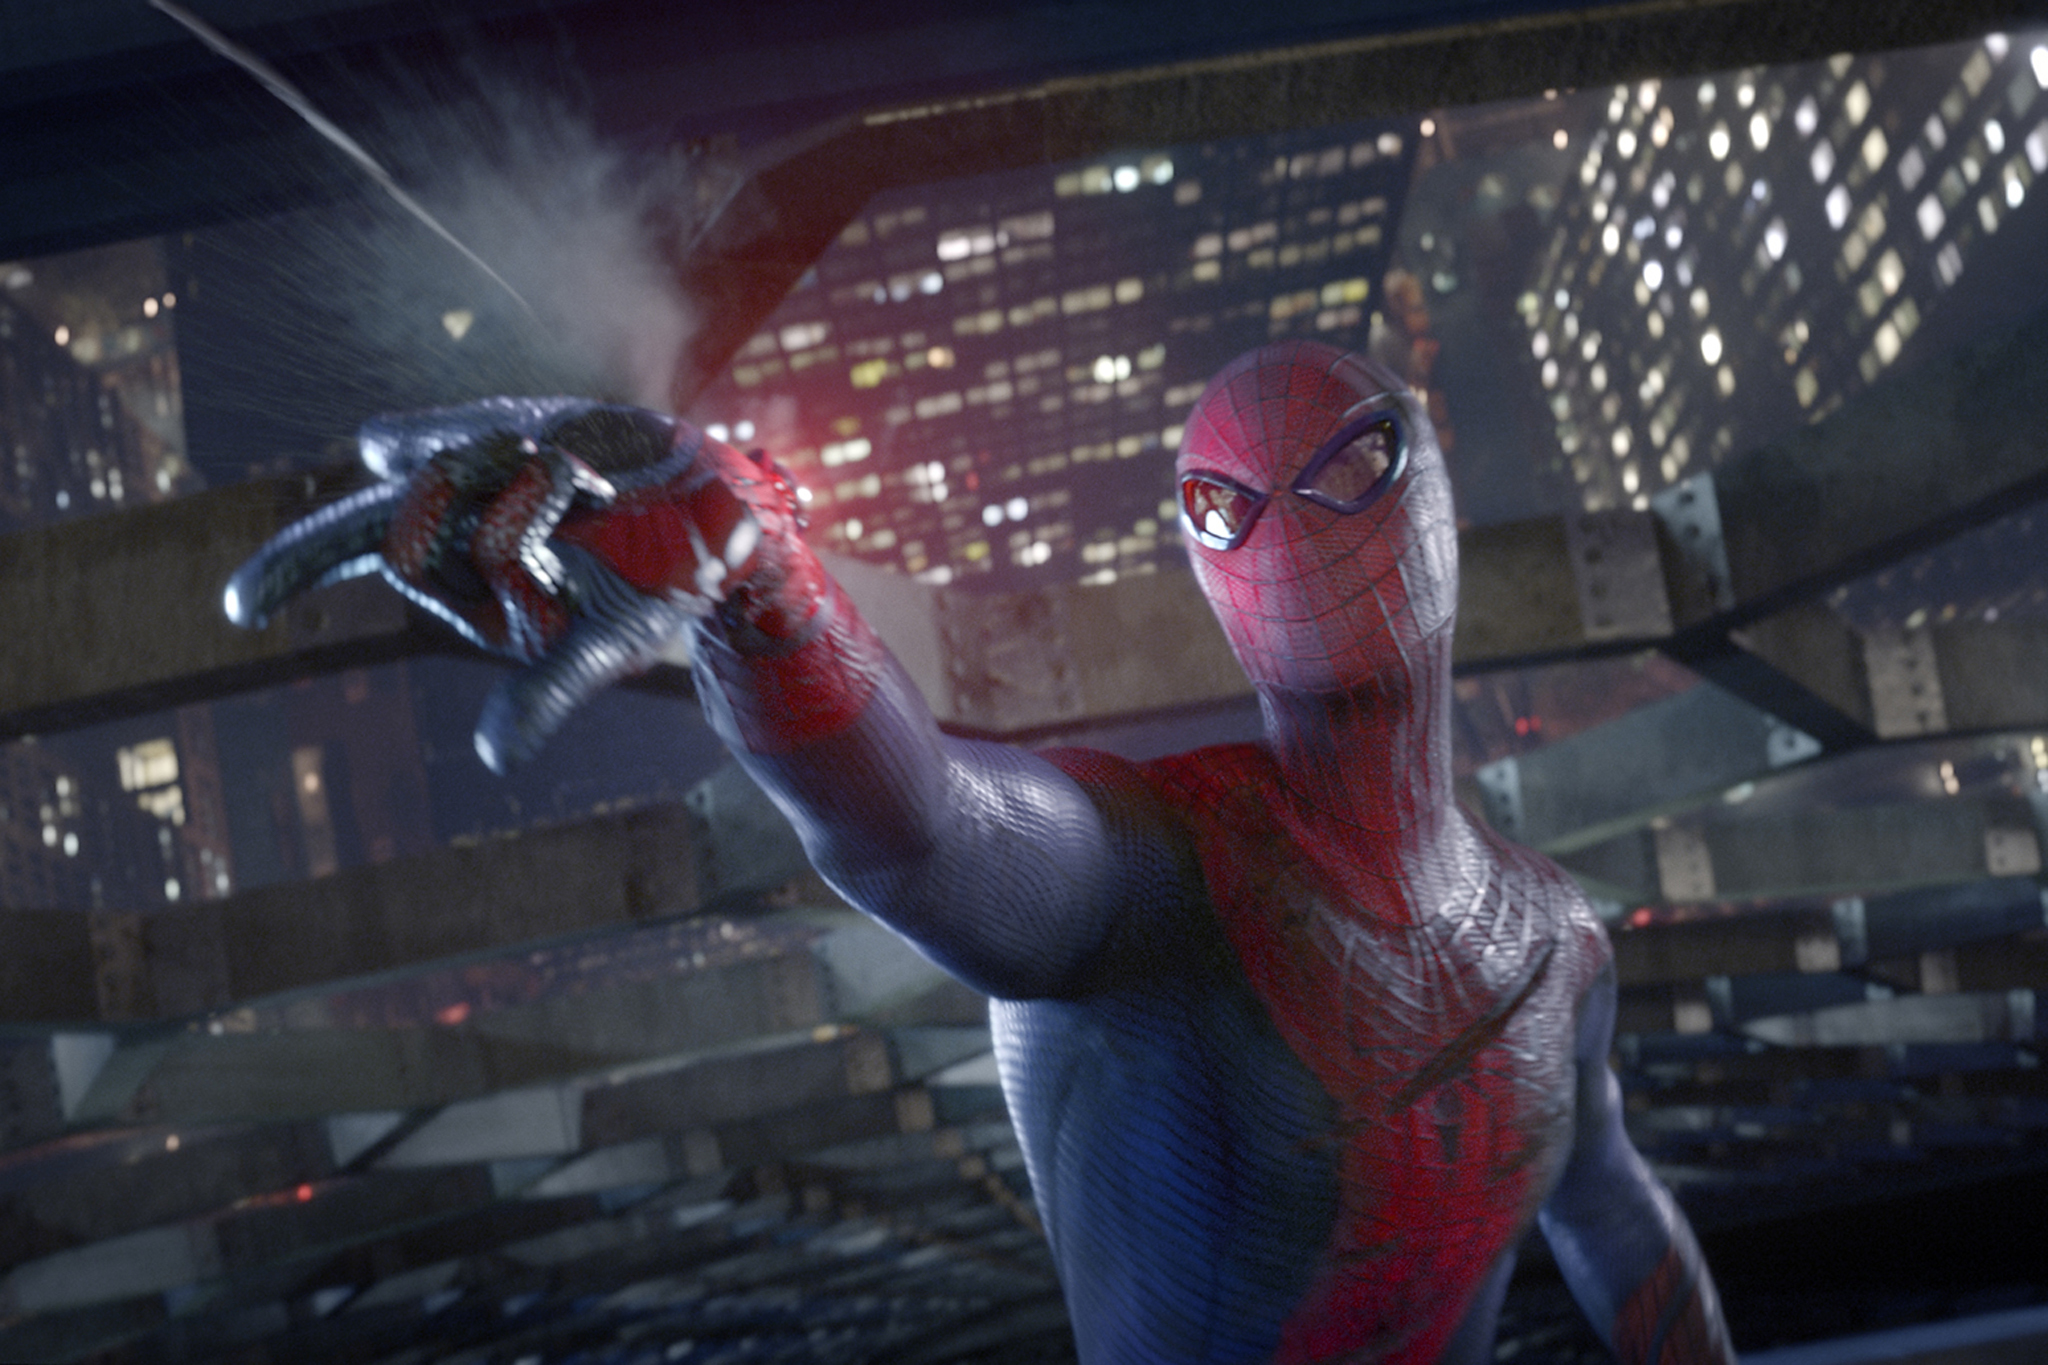 2012: 'The Amazing Spider-Man'